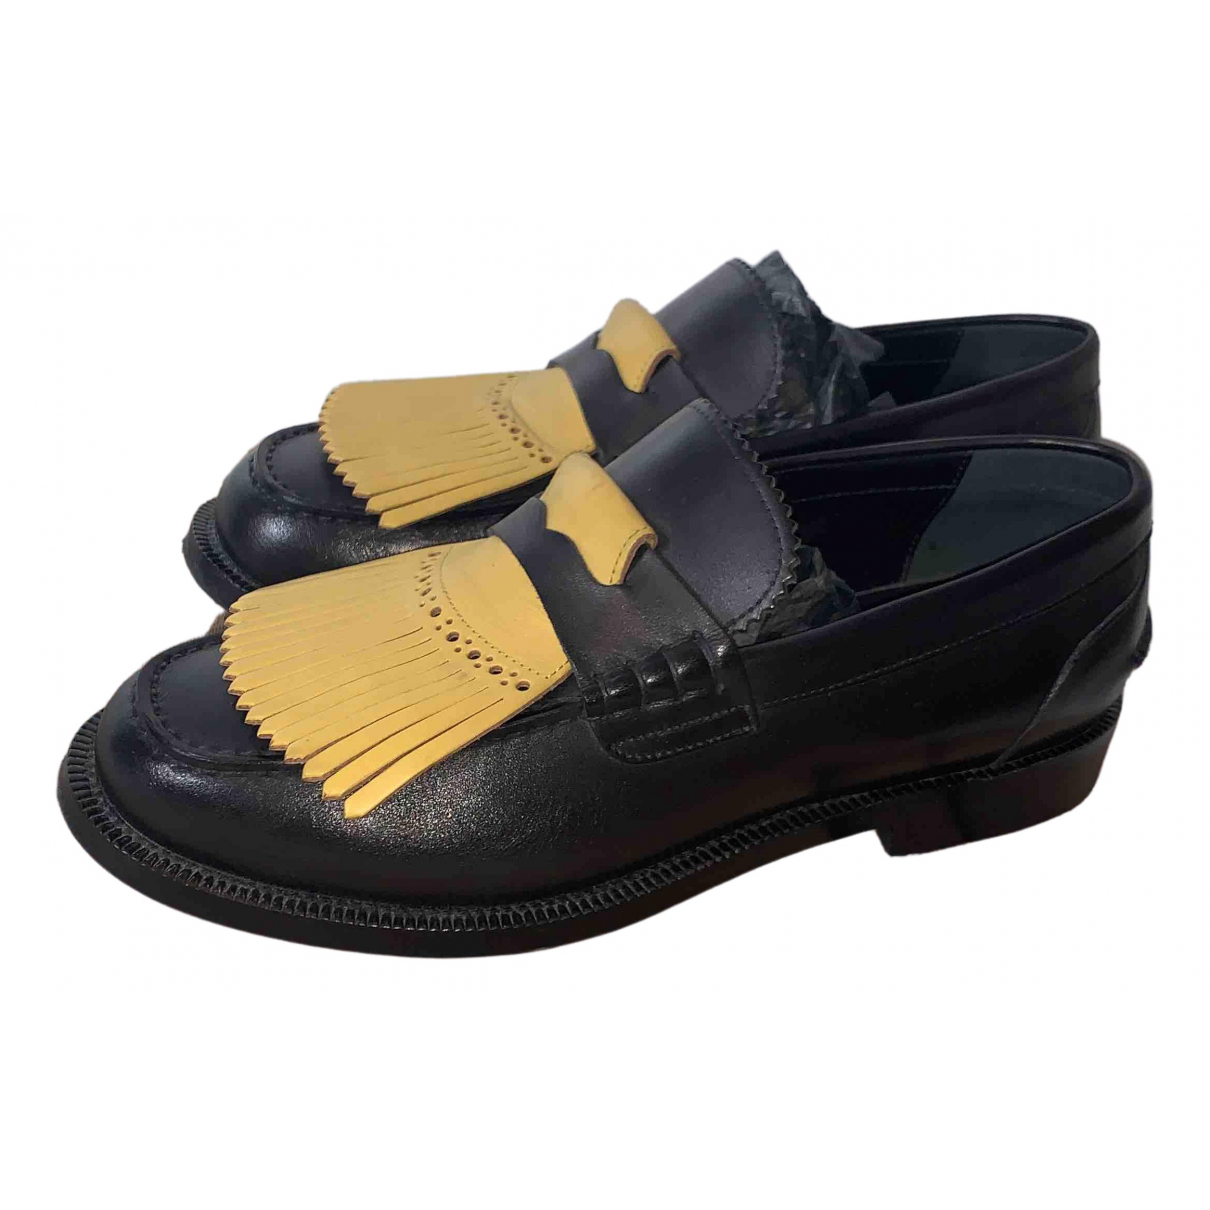 Burberry \N Black Leather Flats for Women 39.5 IT